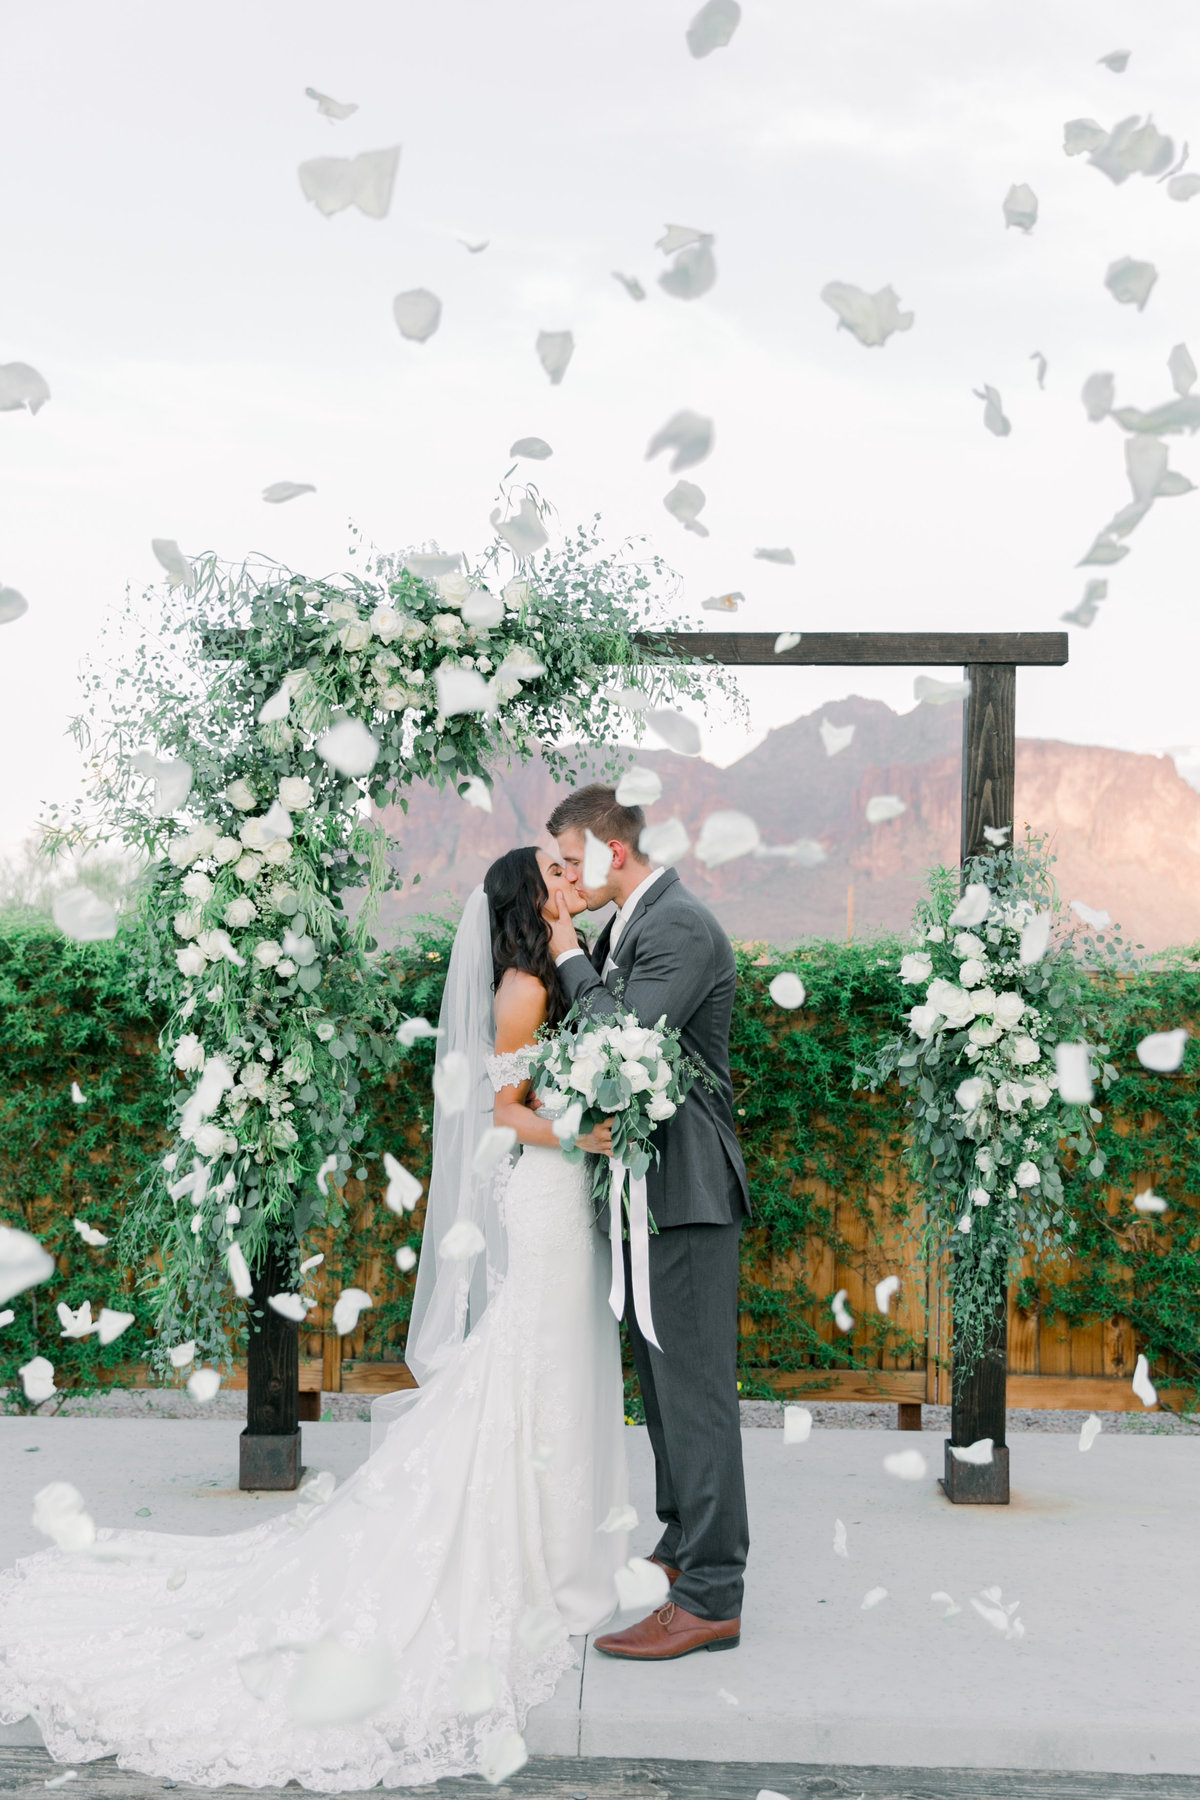 Karlie Colleen Photography - The Paseo Arizona Desert Wedding - Jackie & Ryan-168